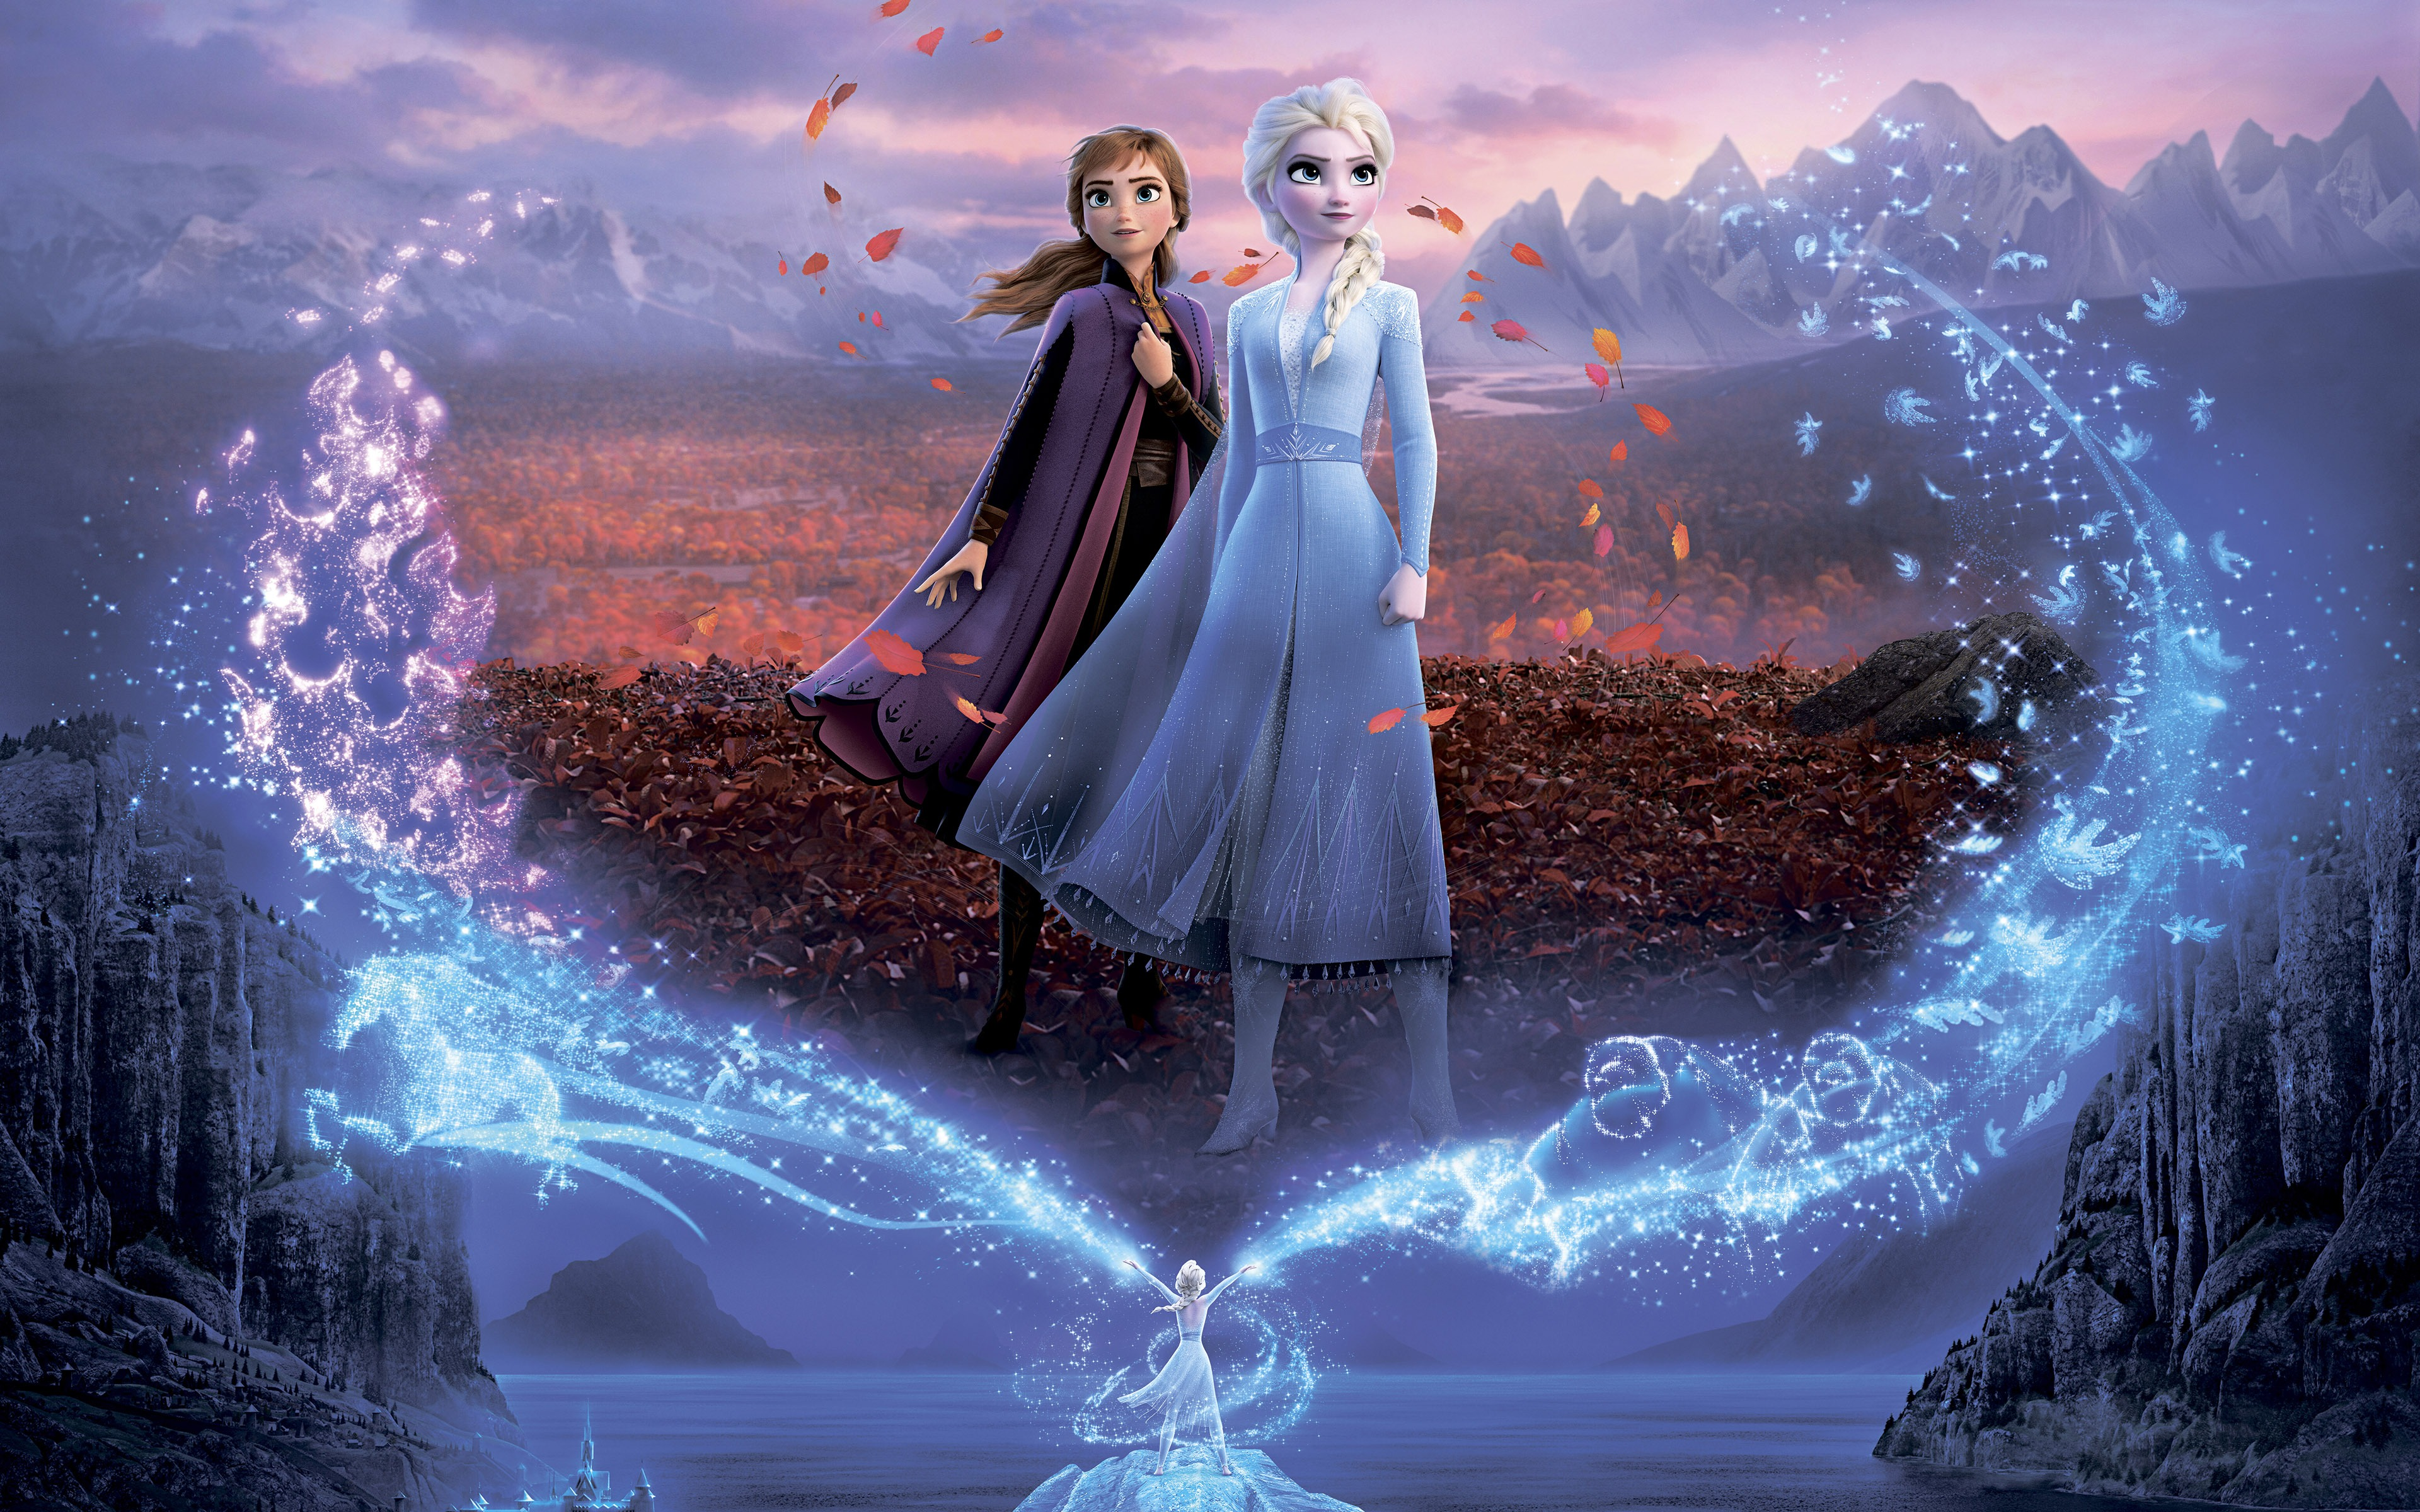 Download wallpapers Anna and Elsa, Frozen 2, 4k, poster ...